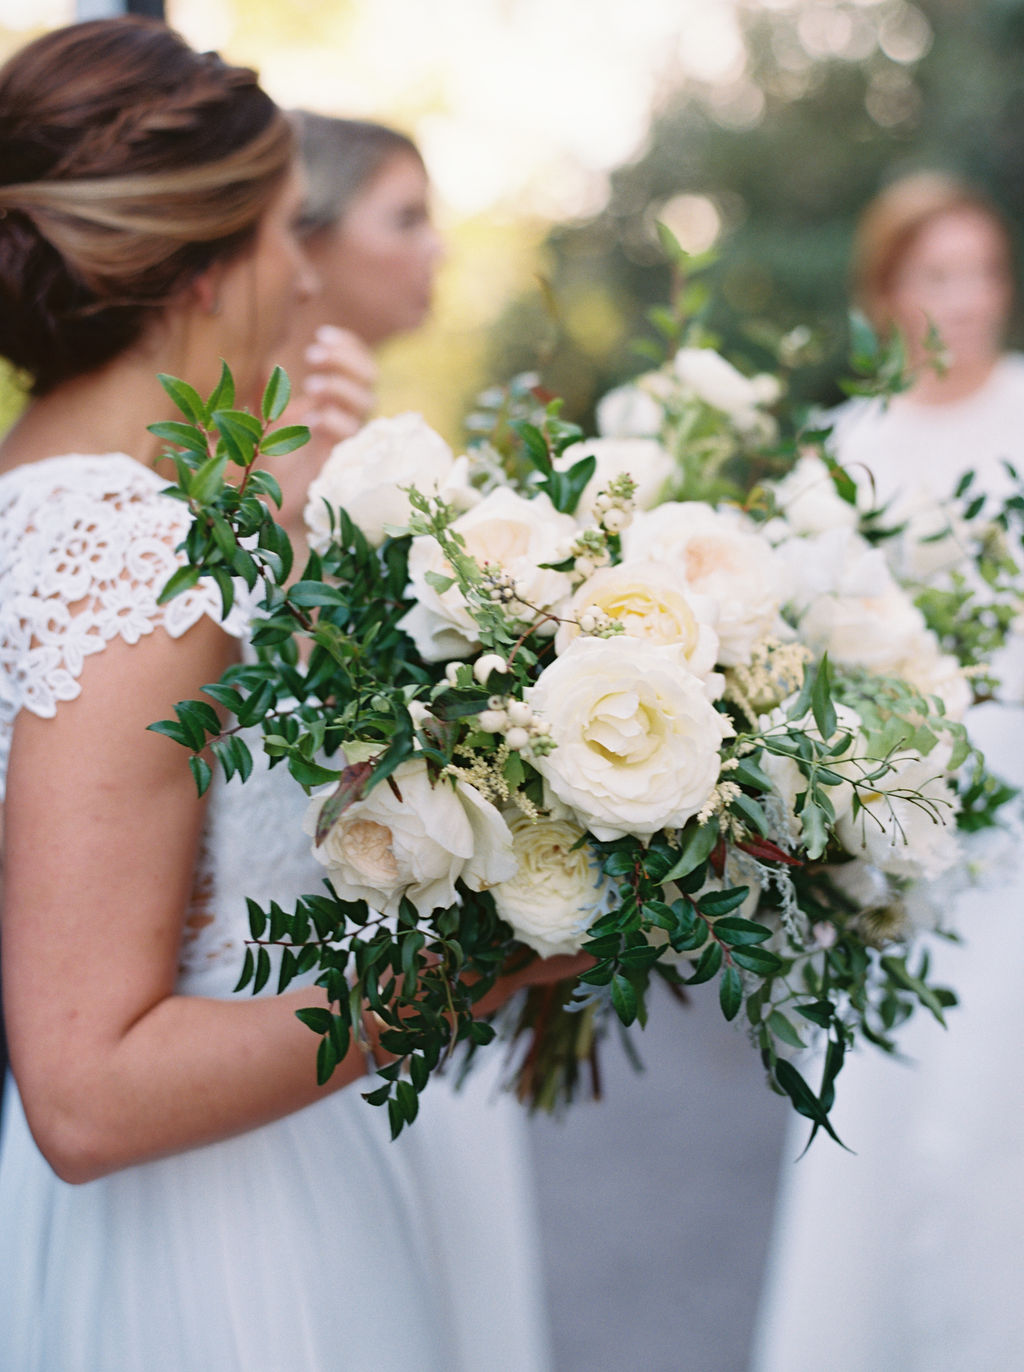 All white bridesmaid dresses with white flowers and greenery. Nashville Wedding Floral Design.